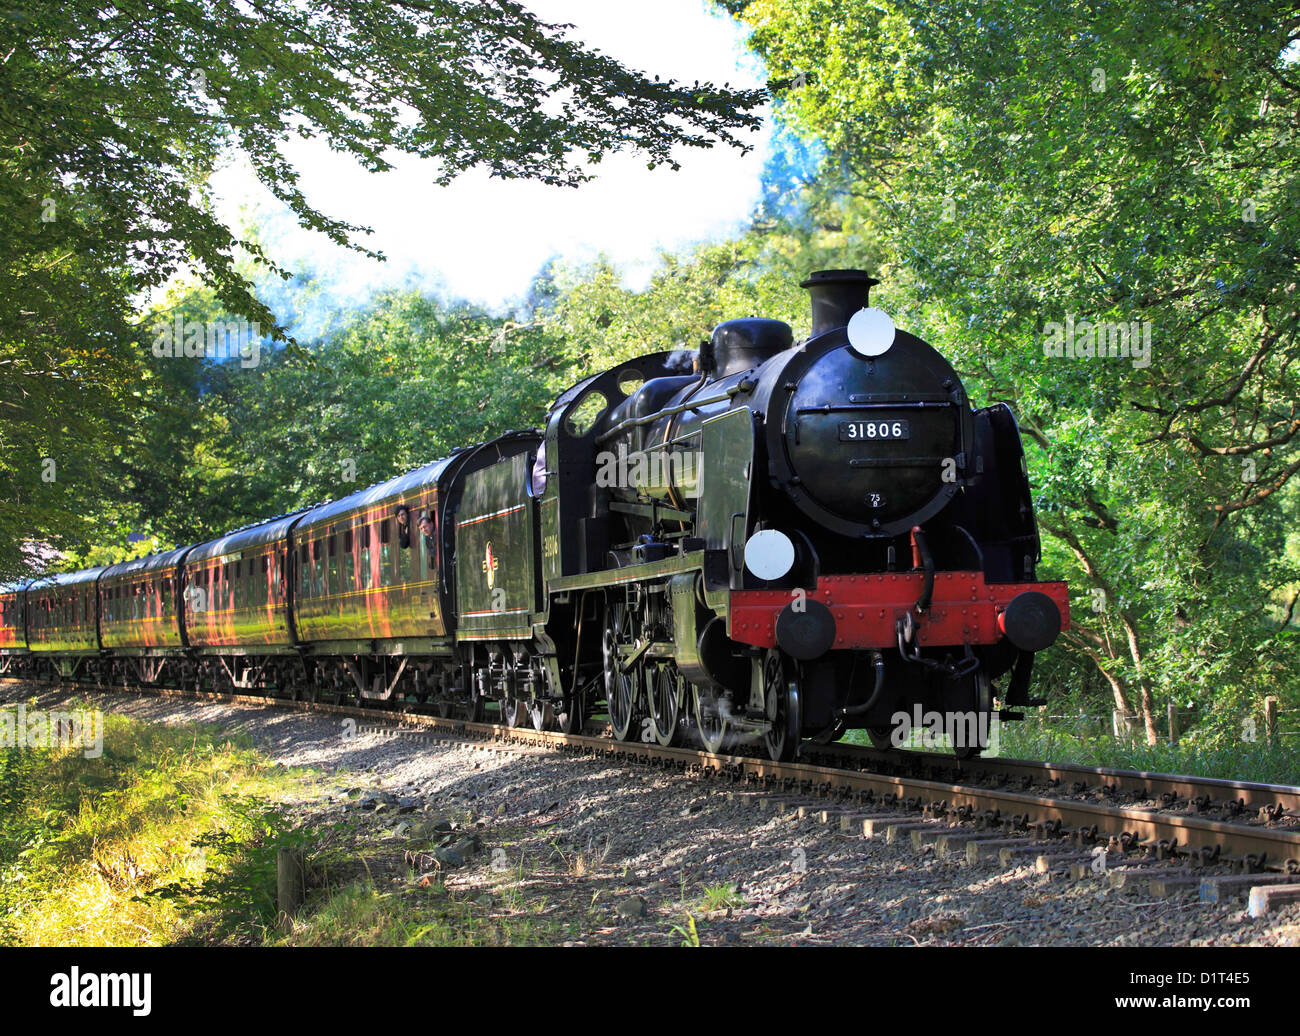 Southern Railway maunsell 'U' class 2-6-0 No. 31806 steams through Trimpley crossing on the Severn Valley - Stock Image